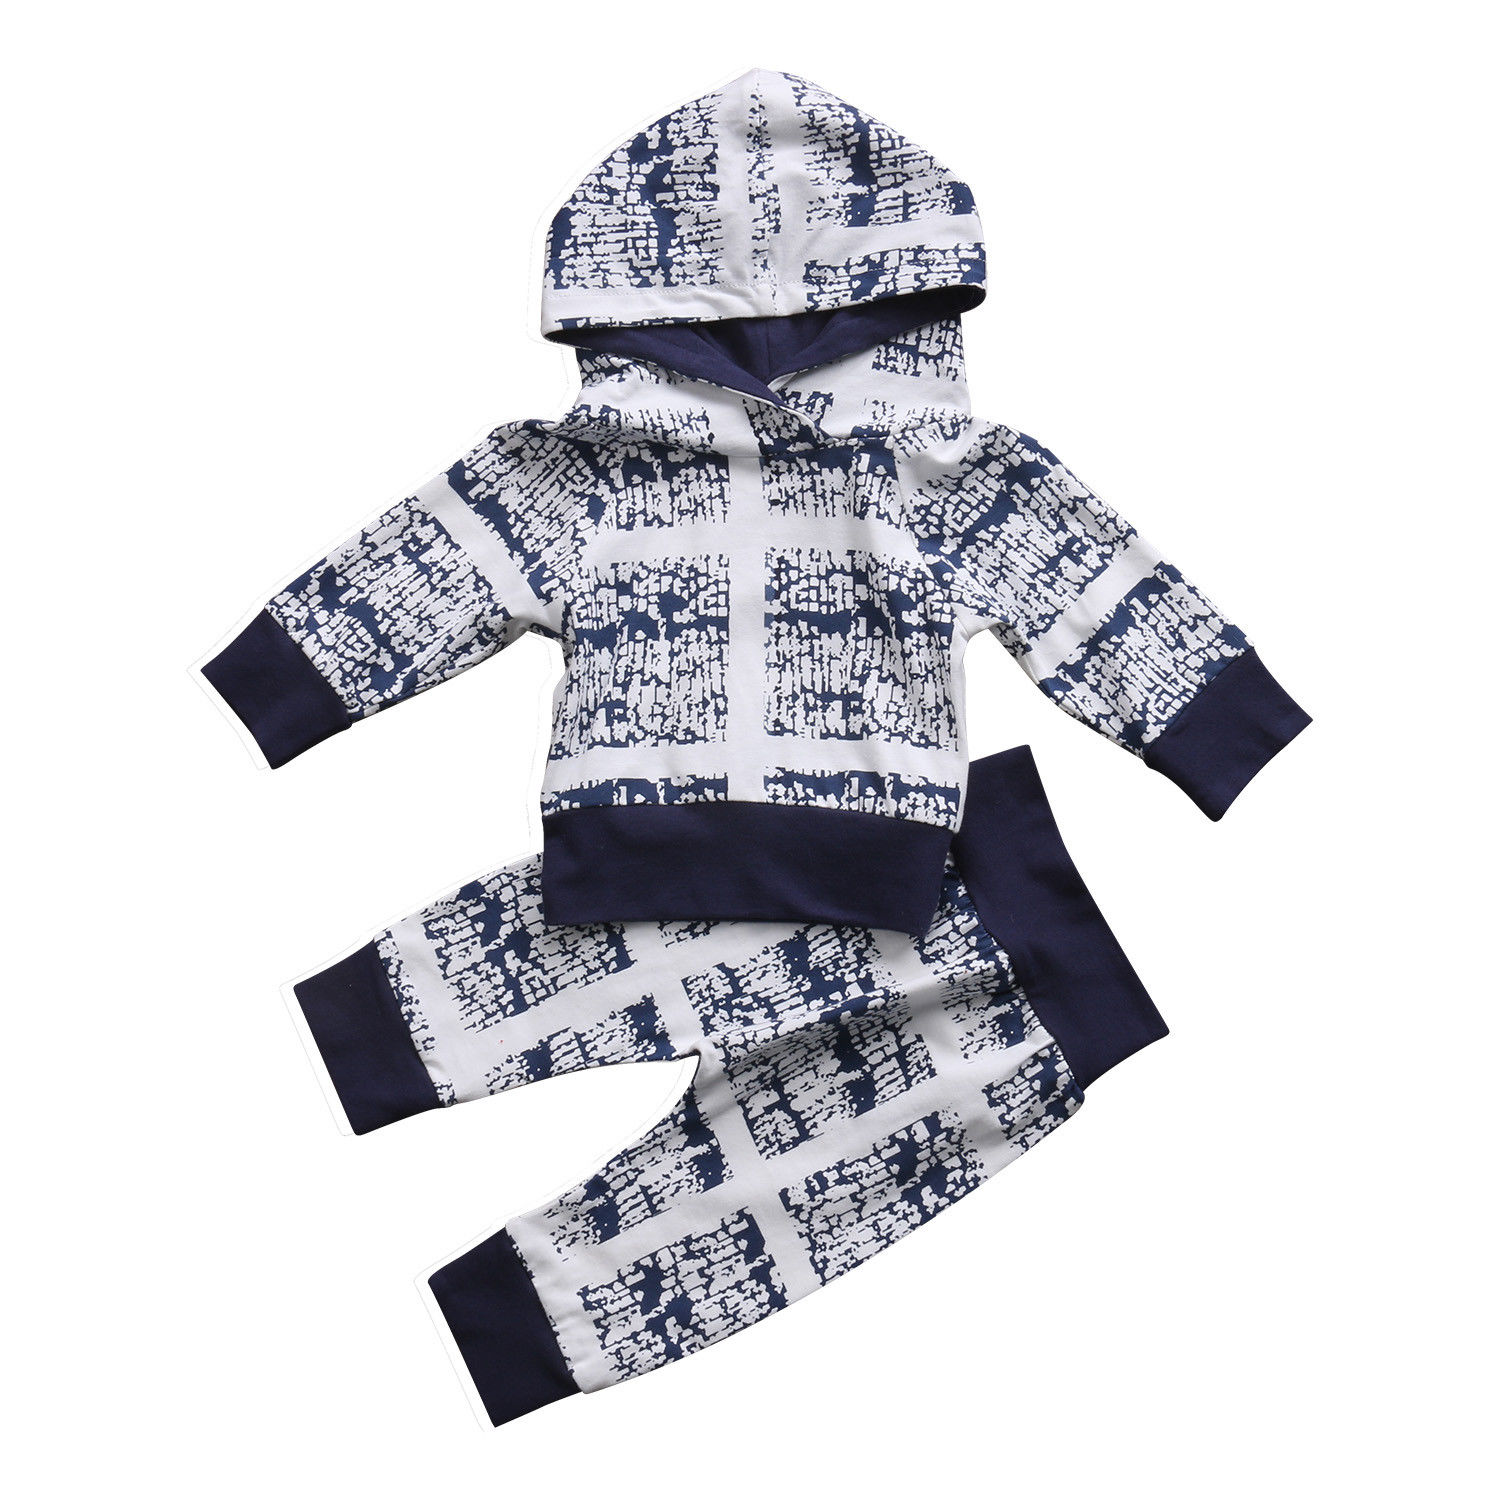 Newborn Infant Baby Boys Girls Clothes Set Long Sleeve Hooded Tops Long Pants Children Clothing Autumn Winter 0-24M Outfits autumn boys clothing set baby boys 3pcs set outfits black jacket long sleeve t shirt denim long pant children clothes boys 4